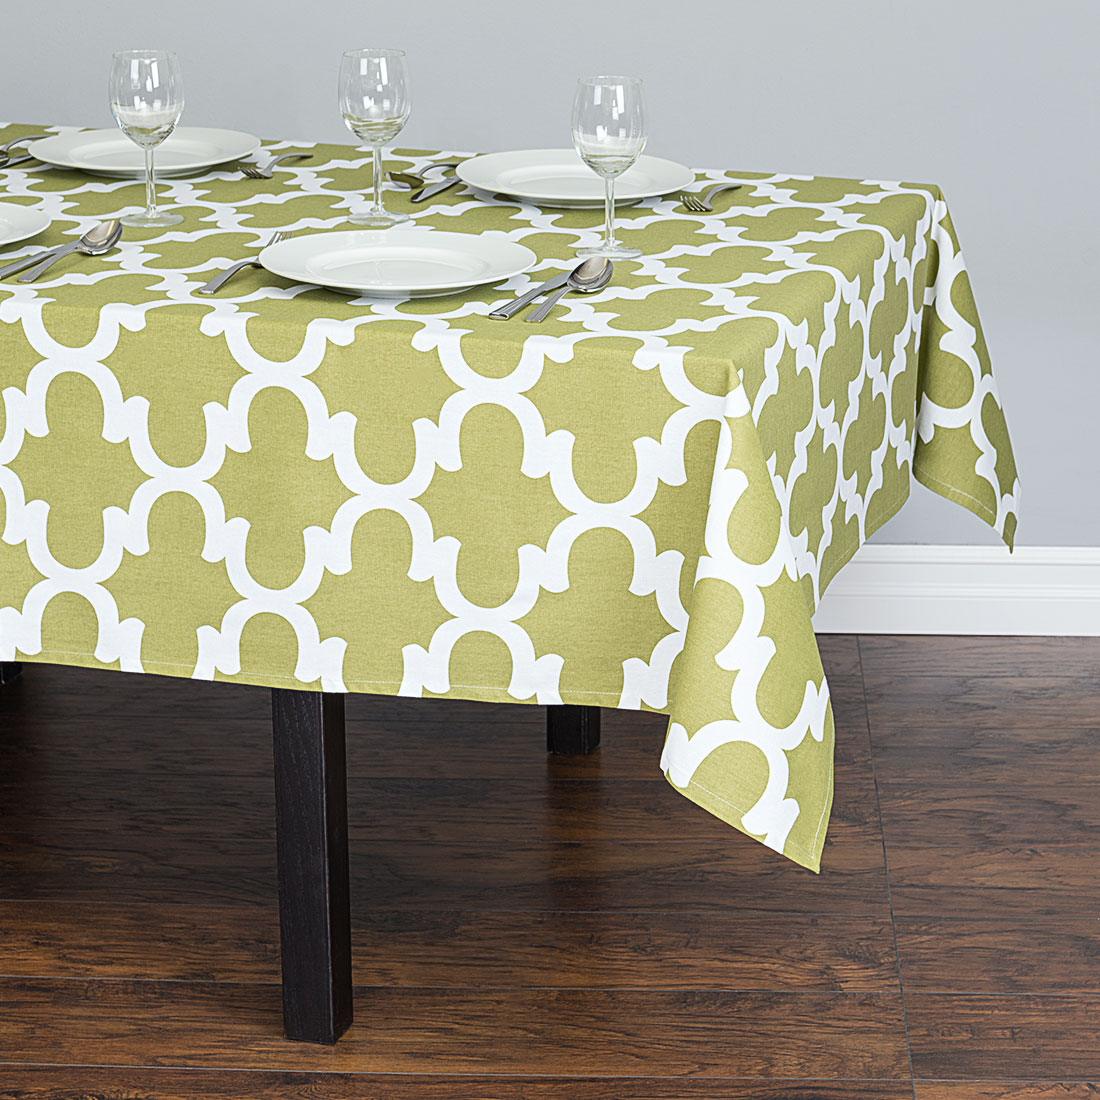 60 x 84 in. Trellis Rectangular Cotton Tablecloth Olive Green & White by